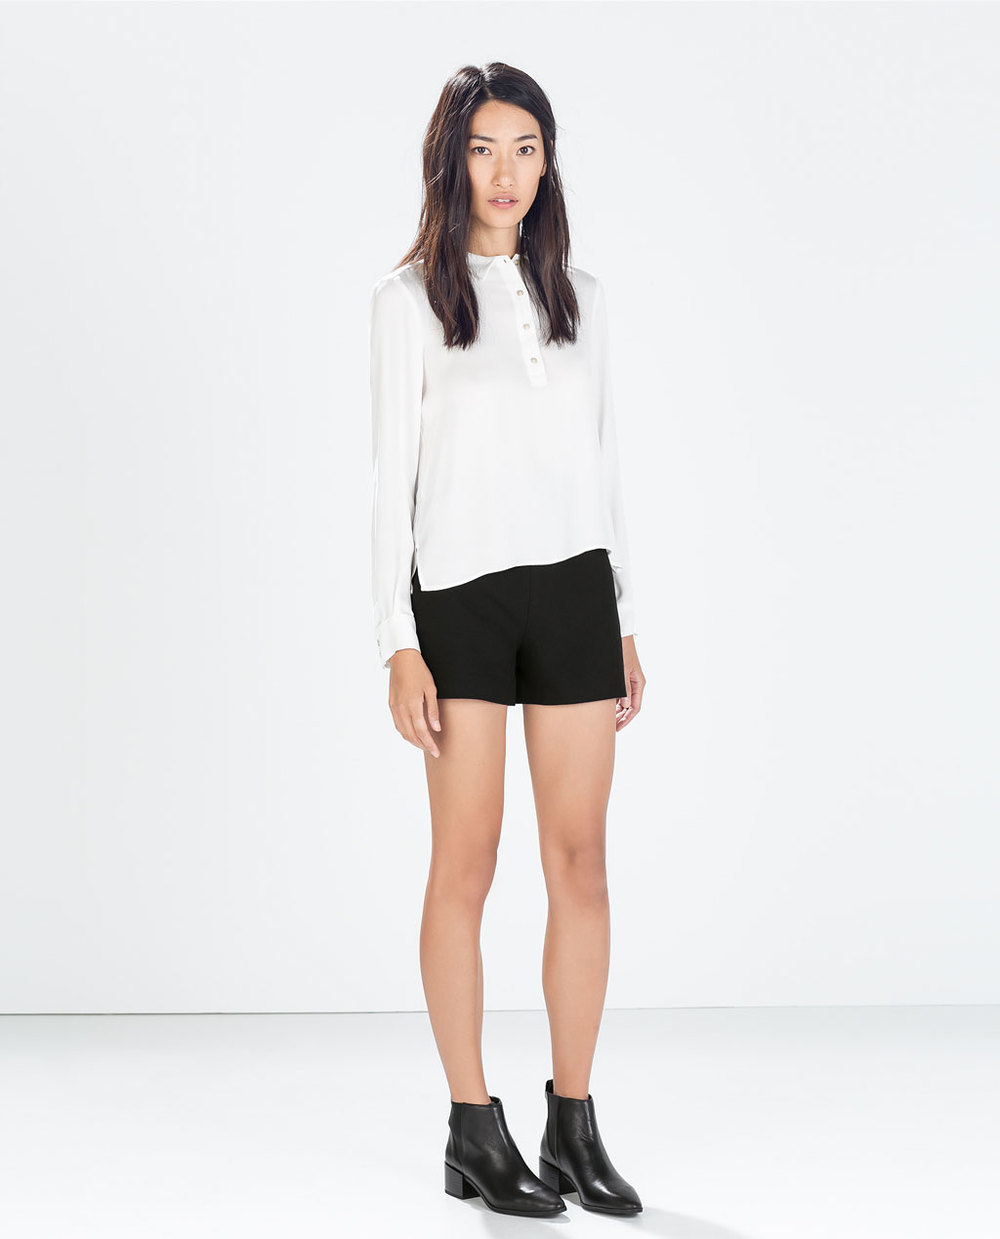 High Waist Shorts. Zara. $59.90.